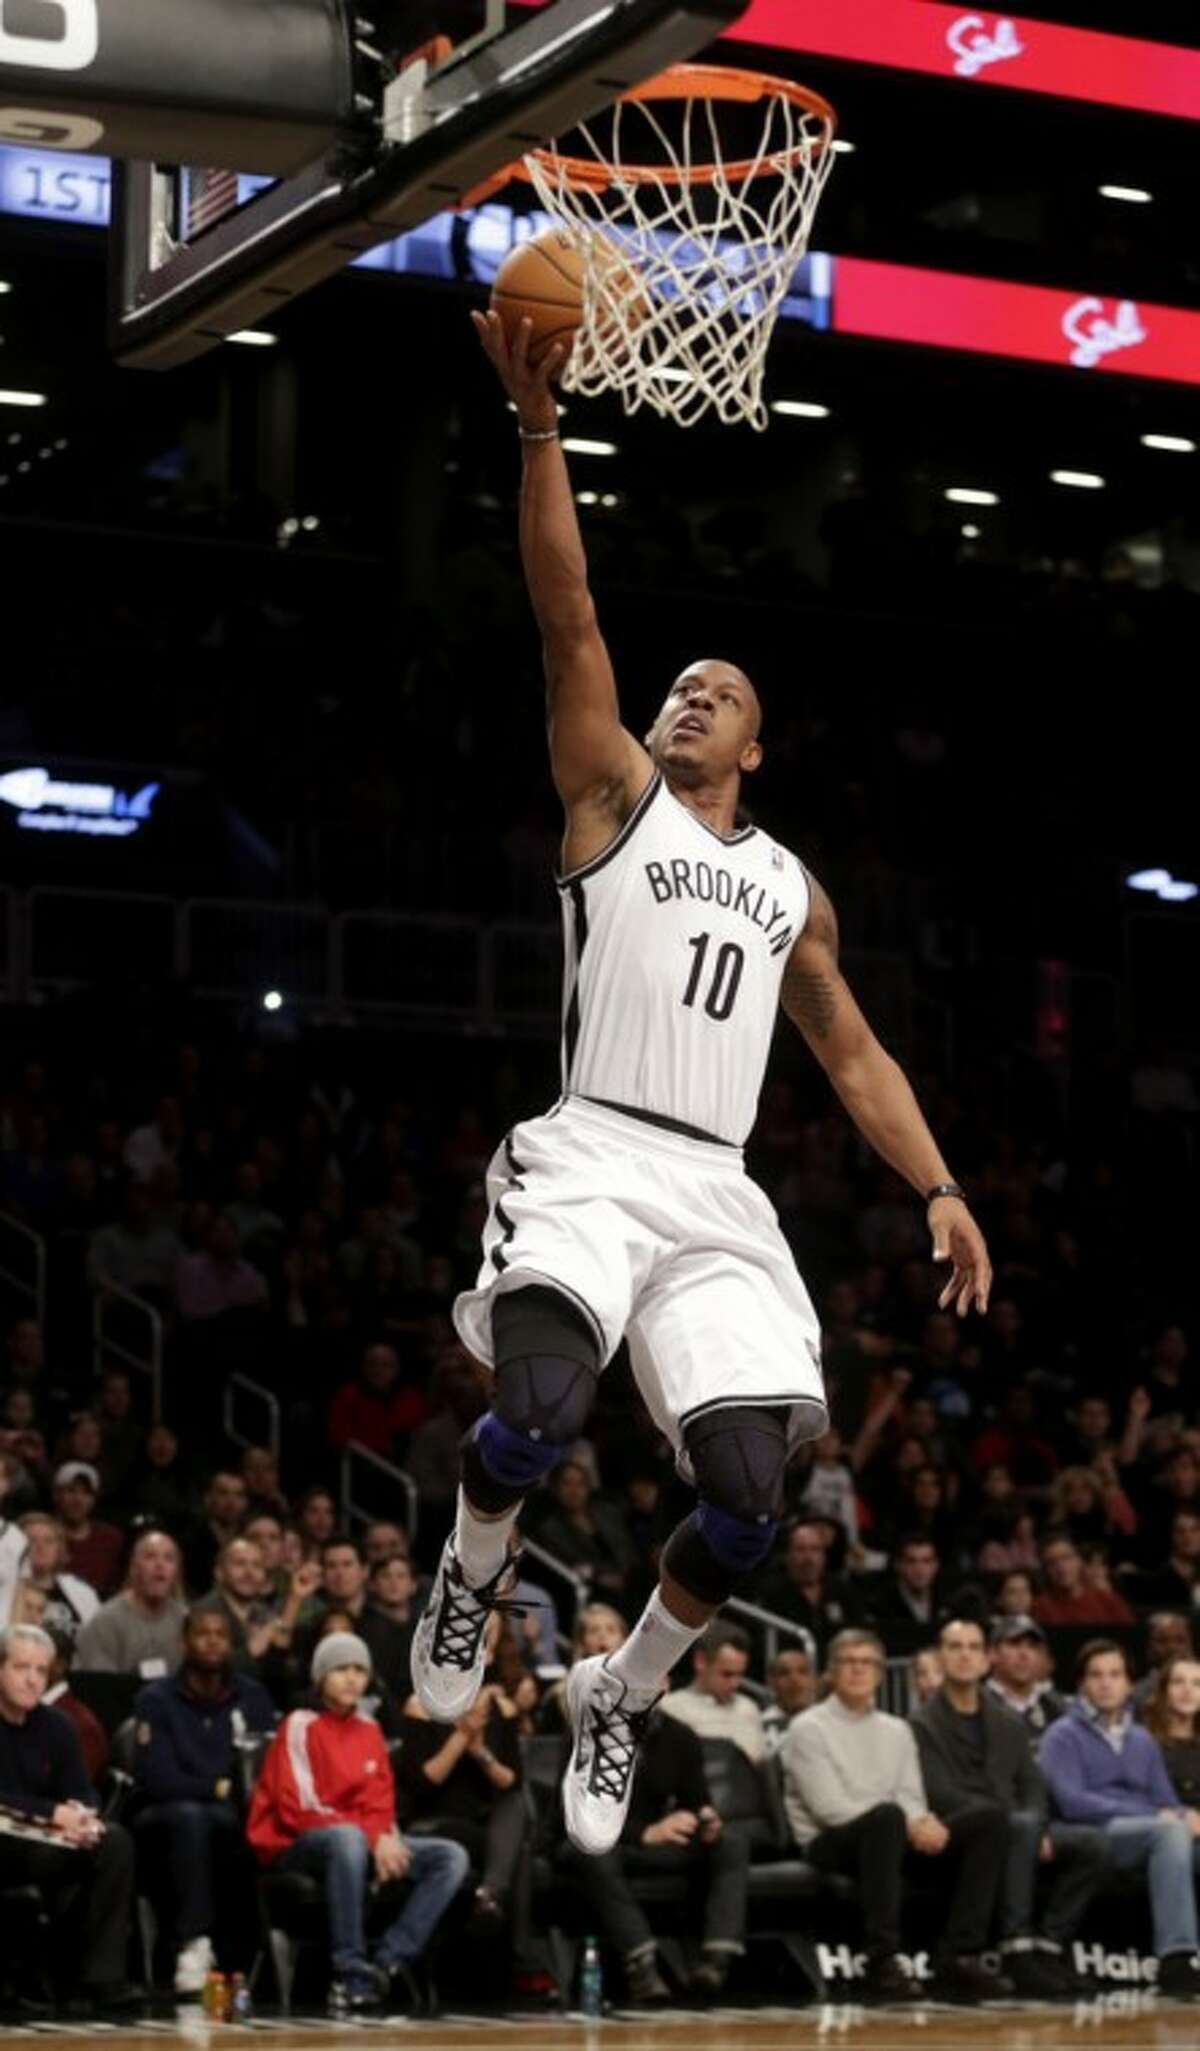 Brooklyn Nets' Keith Bogans makes a basket on a breakaway during the first half of an NBA basketball game against the Philadelphia 76ers at the Barclays Center Sunday, Dec. 23, 2012 in New York. (AP Photo/Seth Wenig)